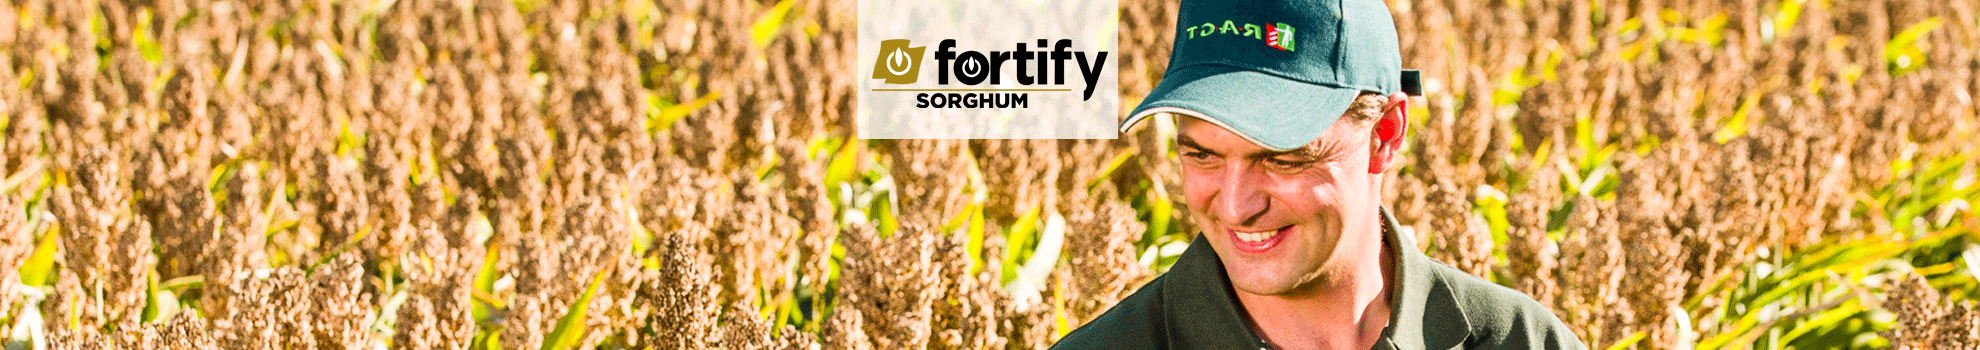 fortify SORGHUM